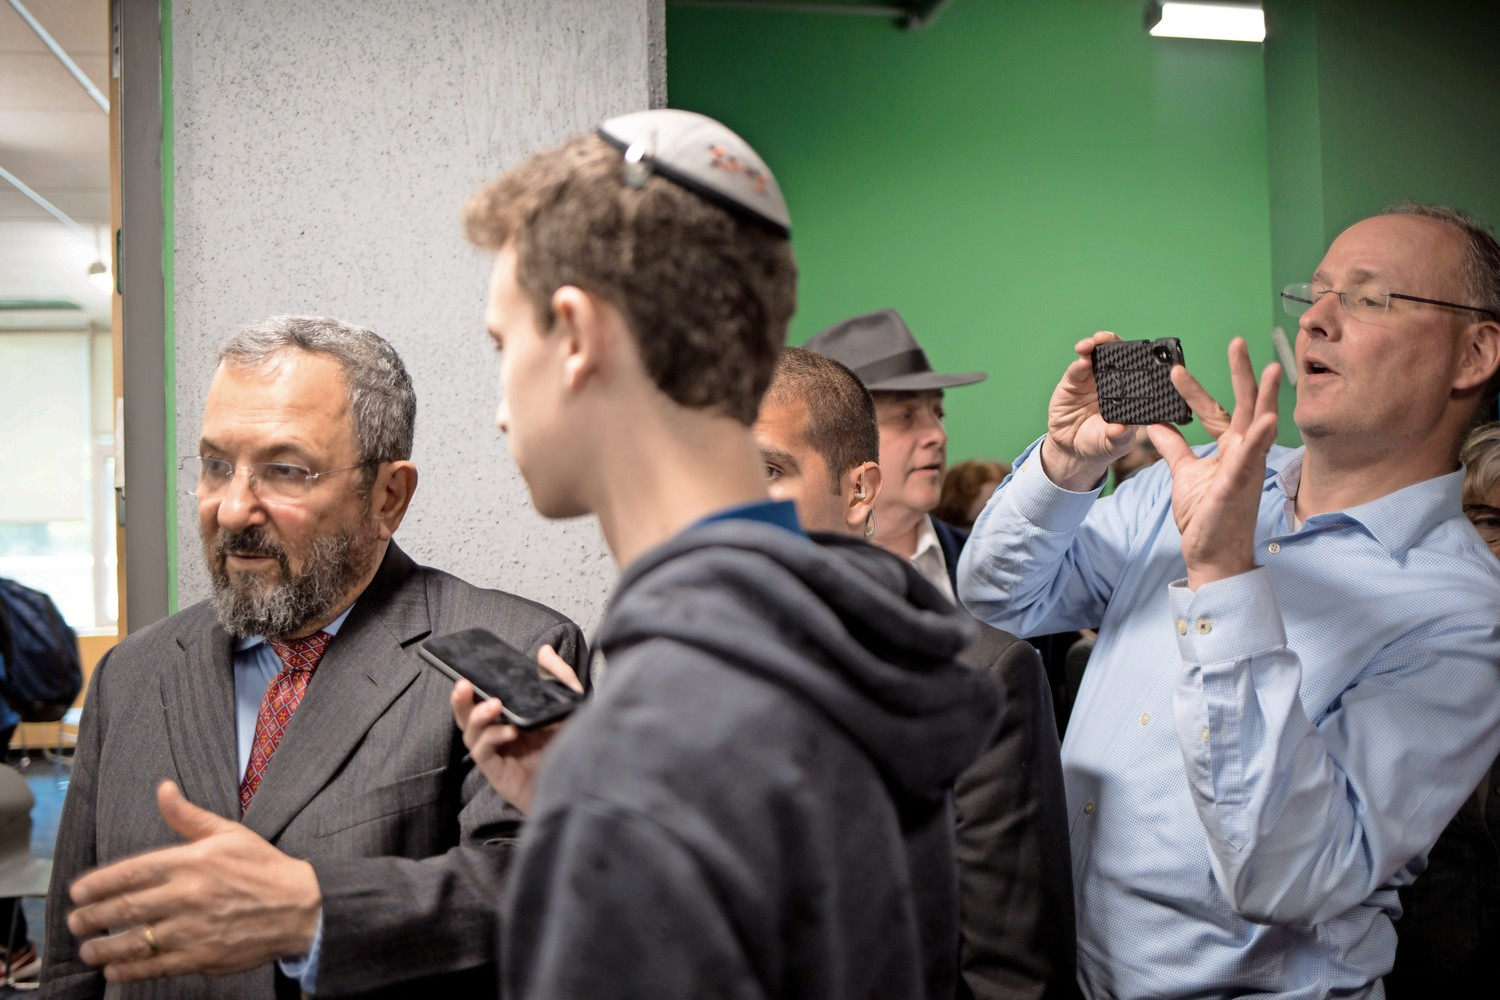 Former Israeli prime minister Ehud Barak, left, speaks with students in the hallway at SAR High School. Barak's visit to the school in honor of Israel's 70th anniversary coincided with the opening of the U.S. embassy in Jerusalem, which saw an outbreak of violence in Gaza where Israeli forces killed at least 50 Palestinians.